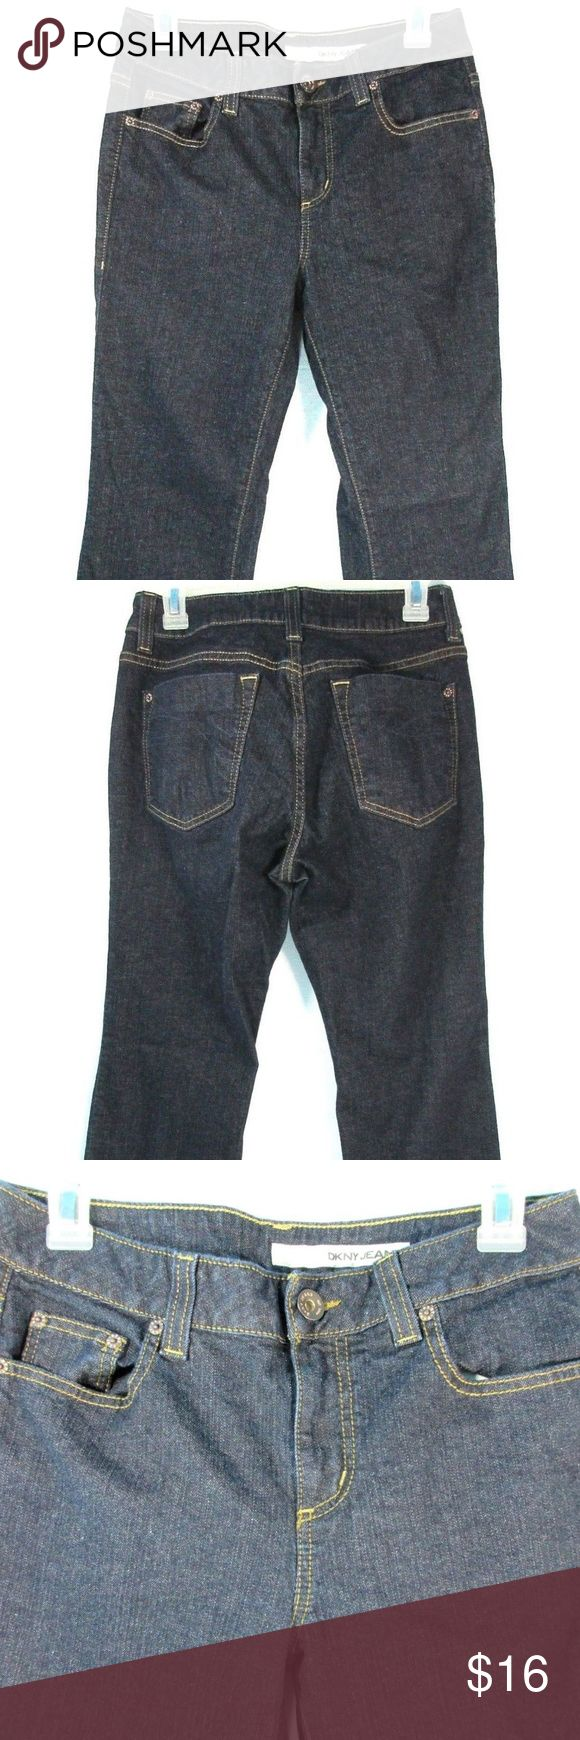 "DKNY Soho Boot Cut Womens Jeans Size 10 S DKNY Soho Boot Cut Women's Jeans Size 10 S Dark Indigo Wash. In very good used condition. No rips or stains. (D37)  Measurements: Waist 28.5"" Inseam 30"" Outseam 39.5"" Leg Opening 18.5"" Front Rise 9.5"" Back Rise 12.75"" Hips 37"" Dkny Jeans Boot Cut"